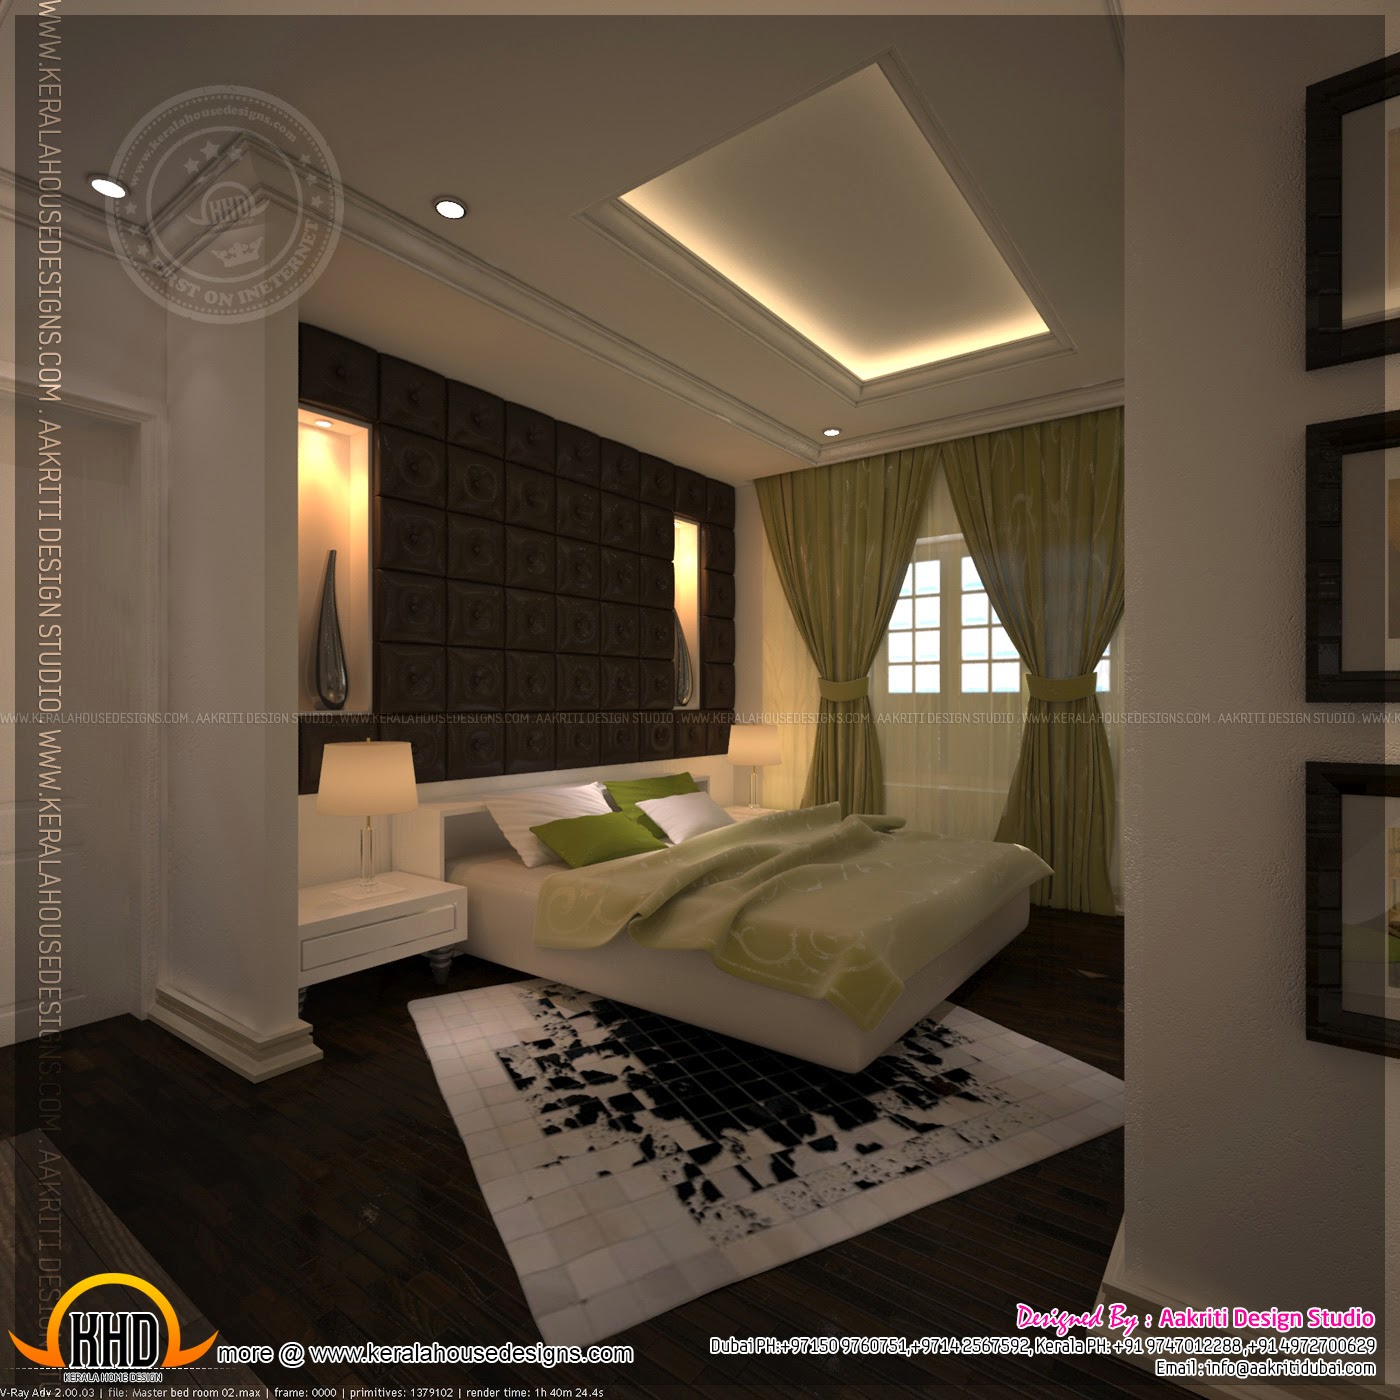 April 2015 home kerala plans for 5 bedroom house interior design